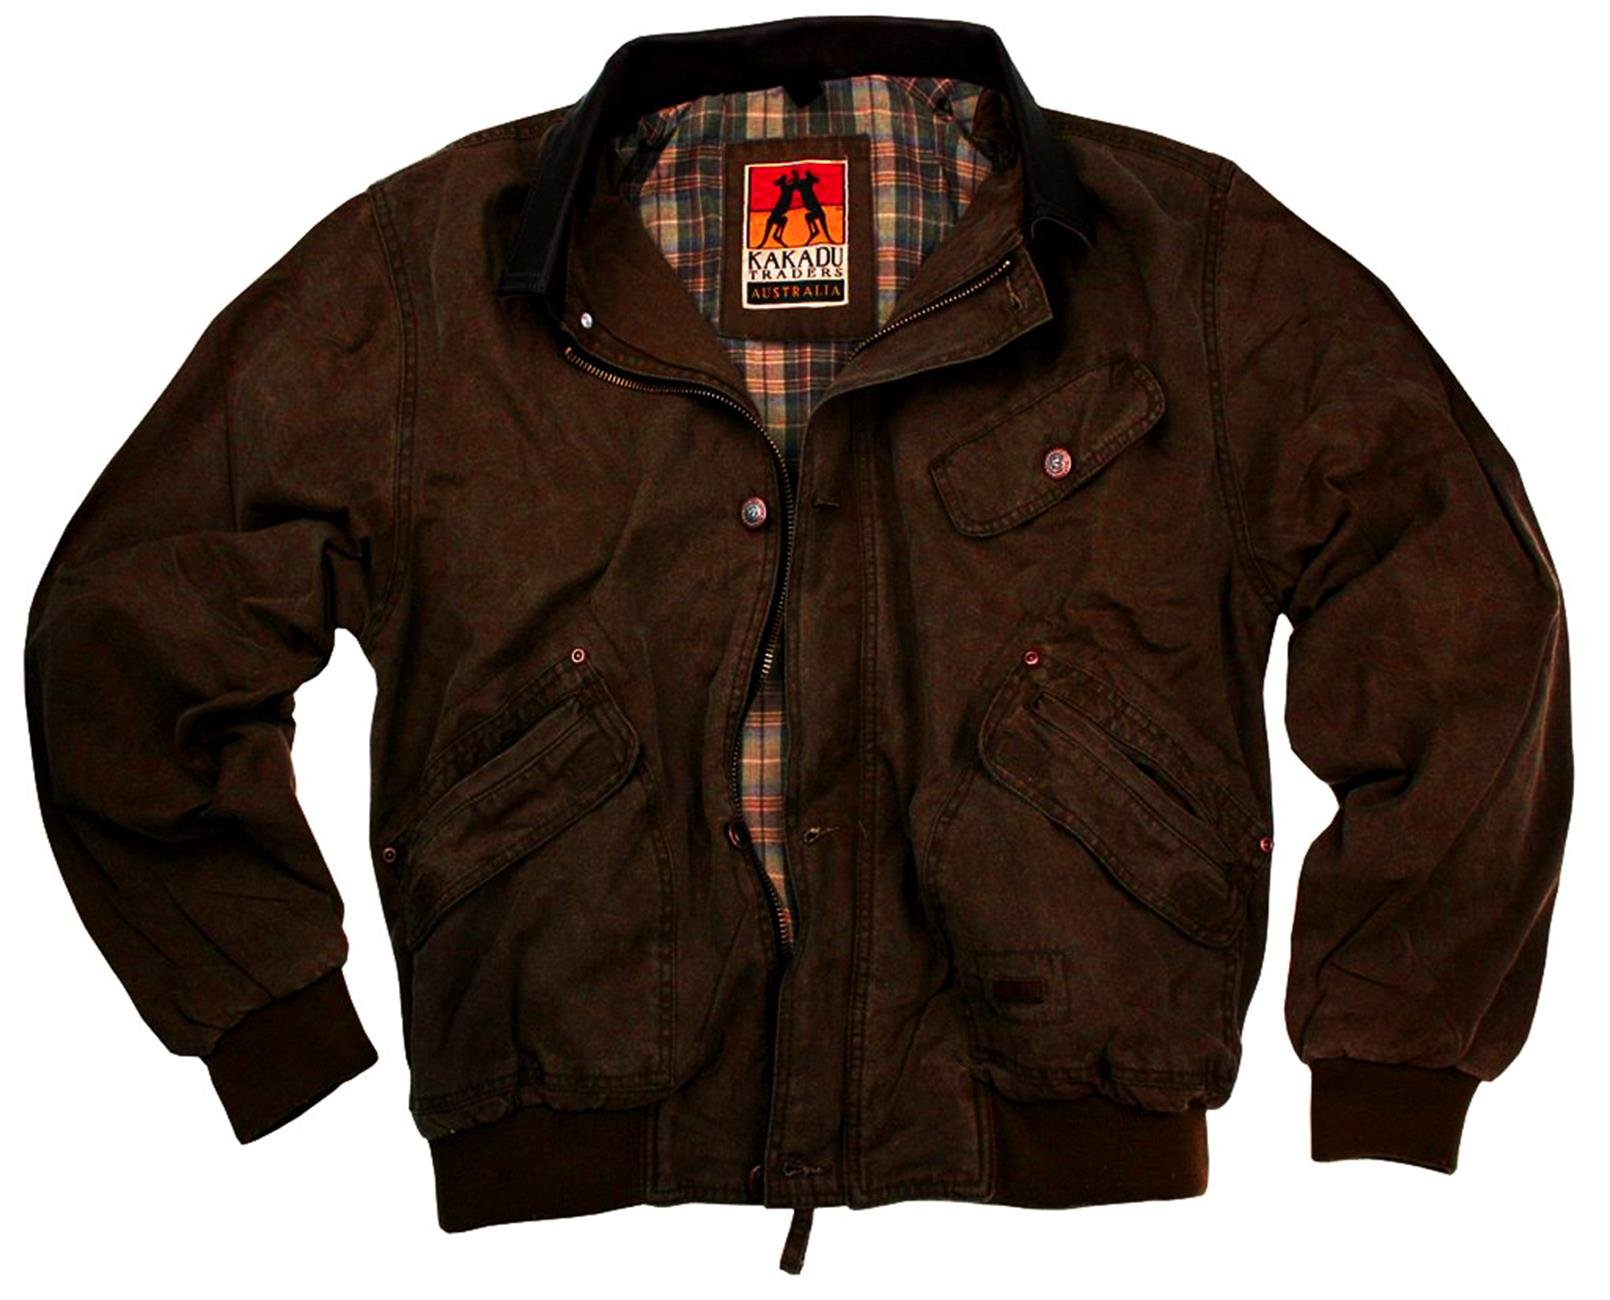 KakaduTraders Australia Classic Bomber Jacket Watson Bay With Leather Collar